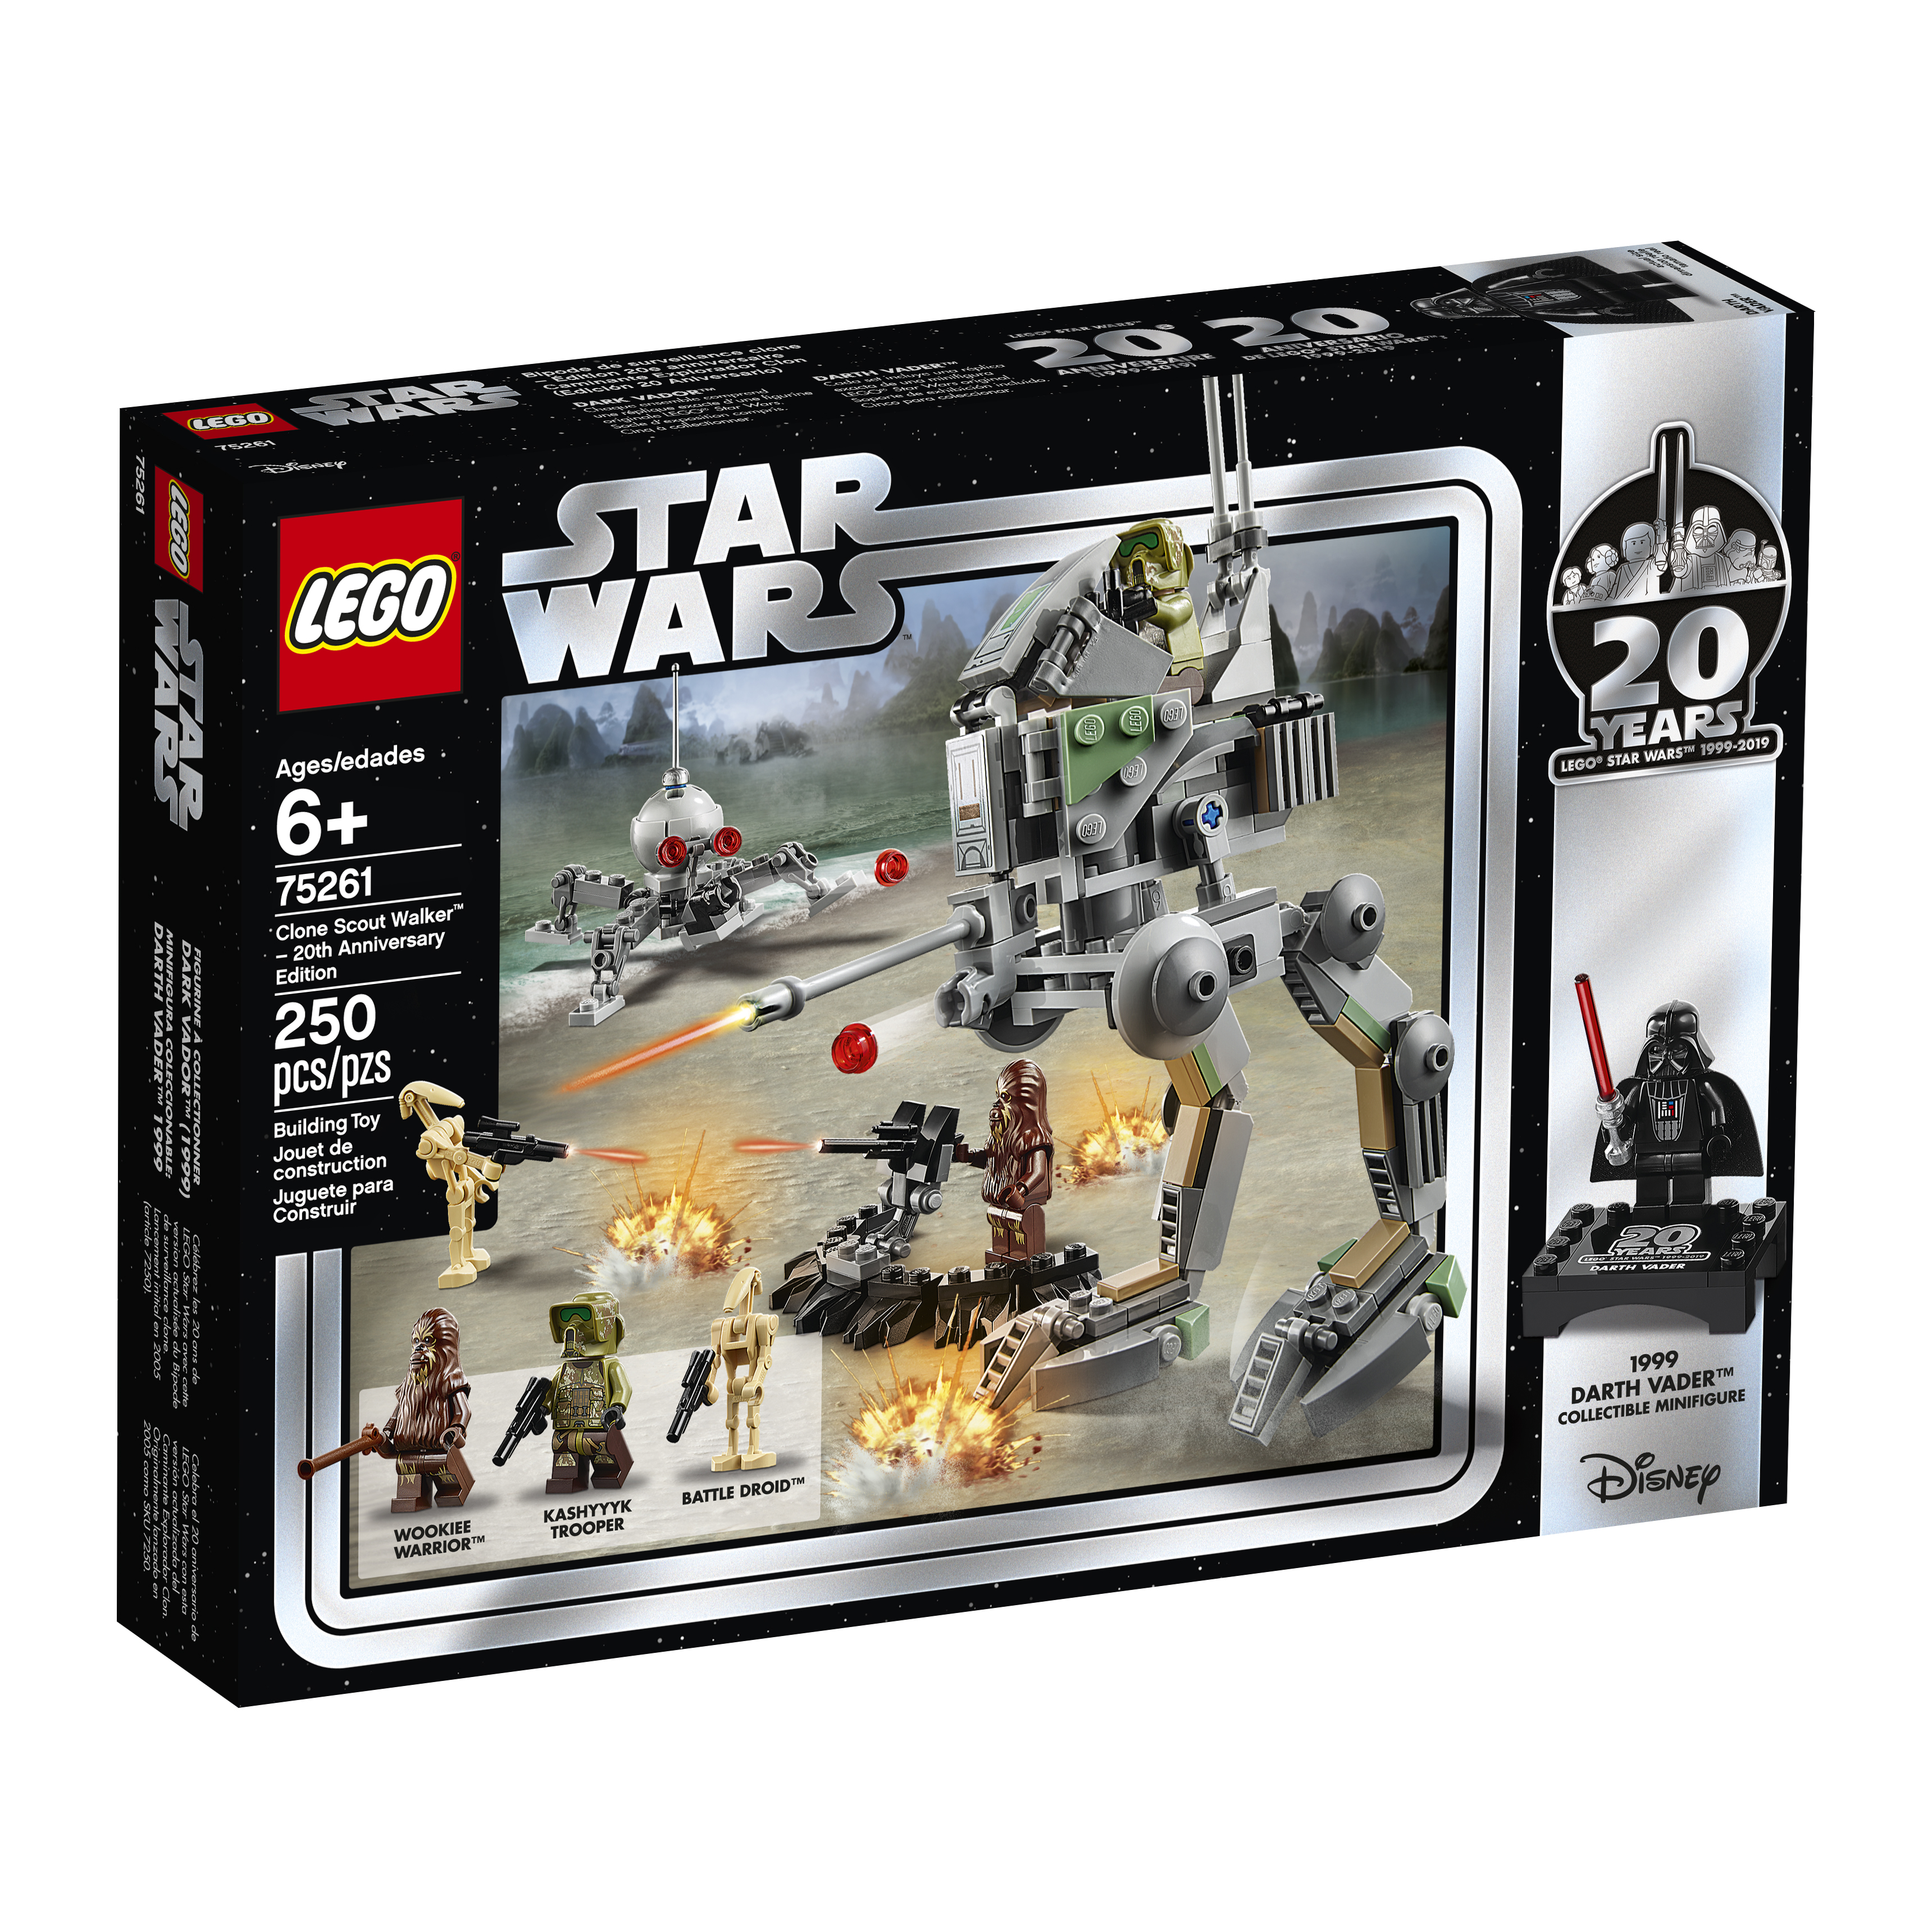 SW 20th Anniversary Edition Clone Scout Walker Lego Set 1